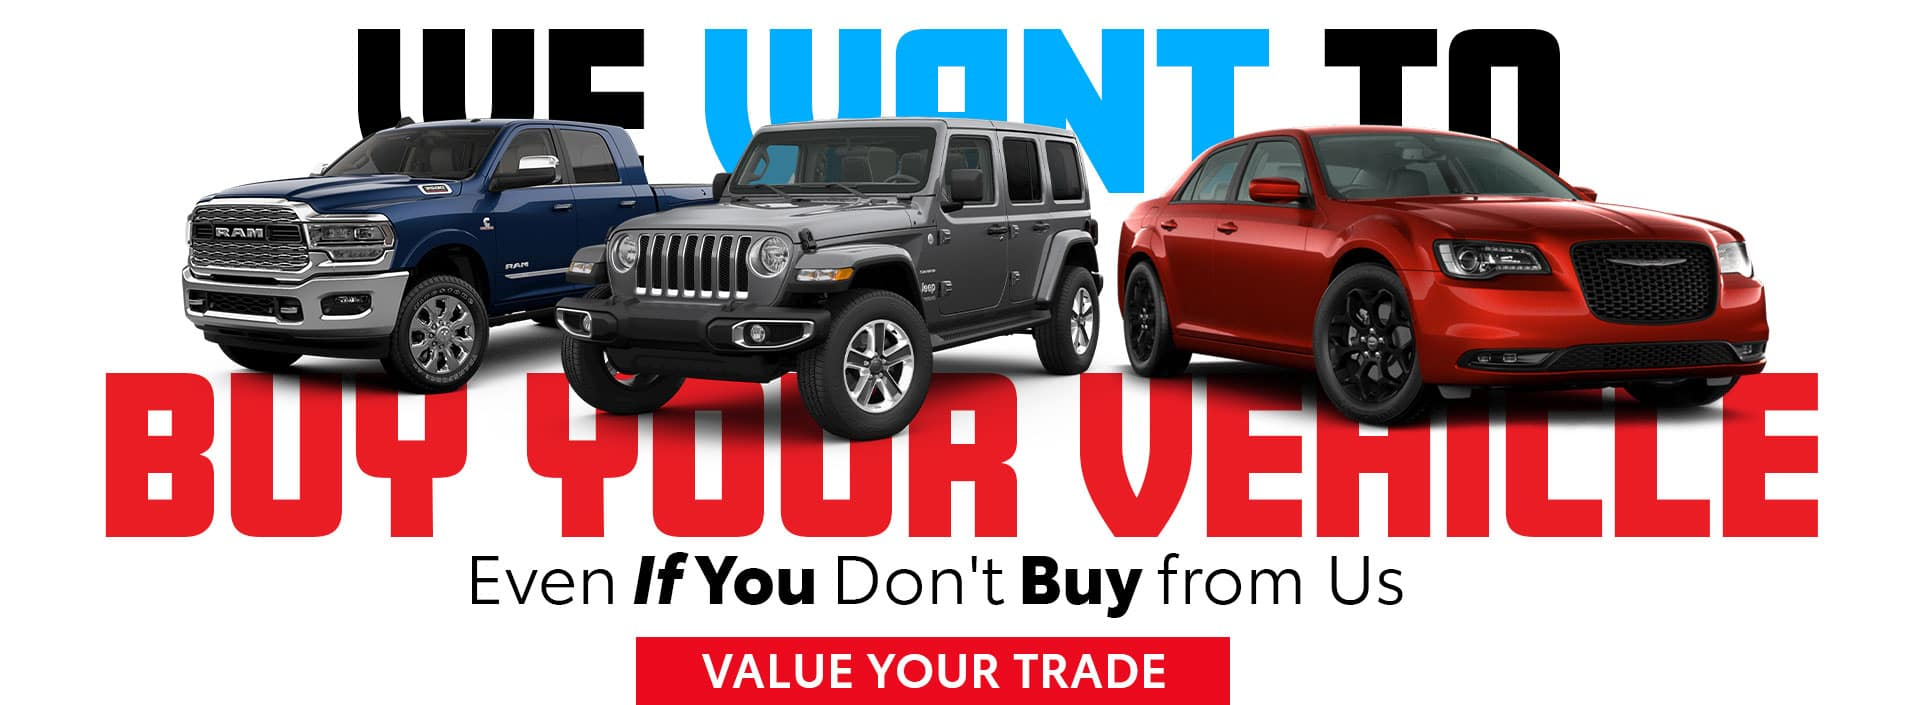 Value Your Trade - We Want to Buy Your Vehicle at Bonham Chrysler in Texas